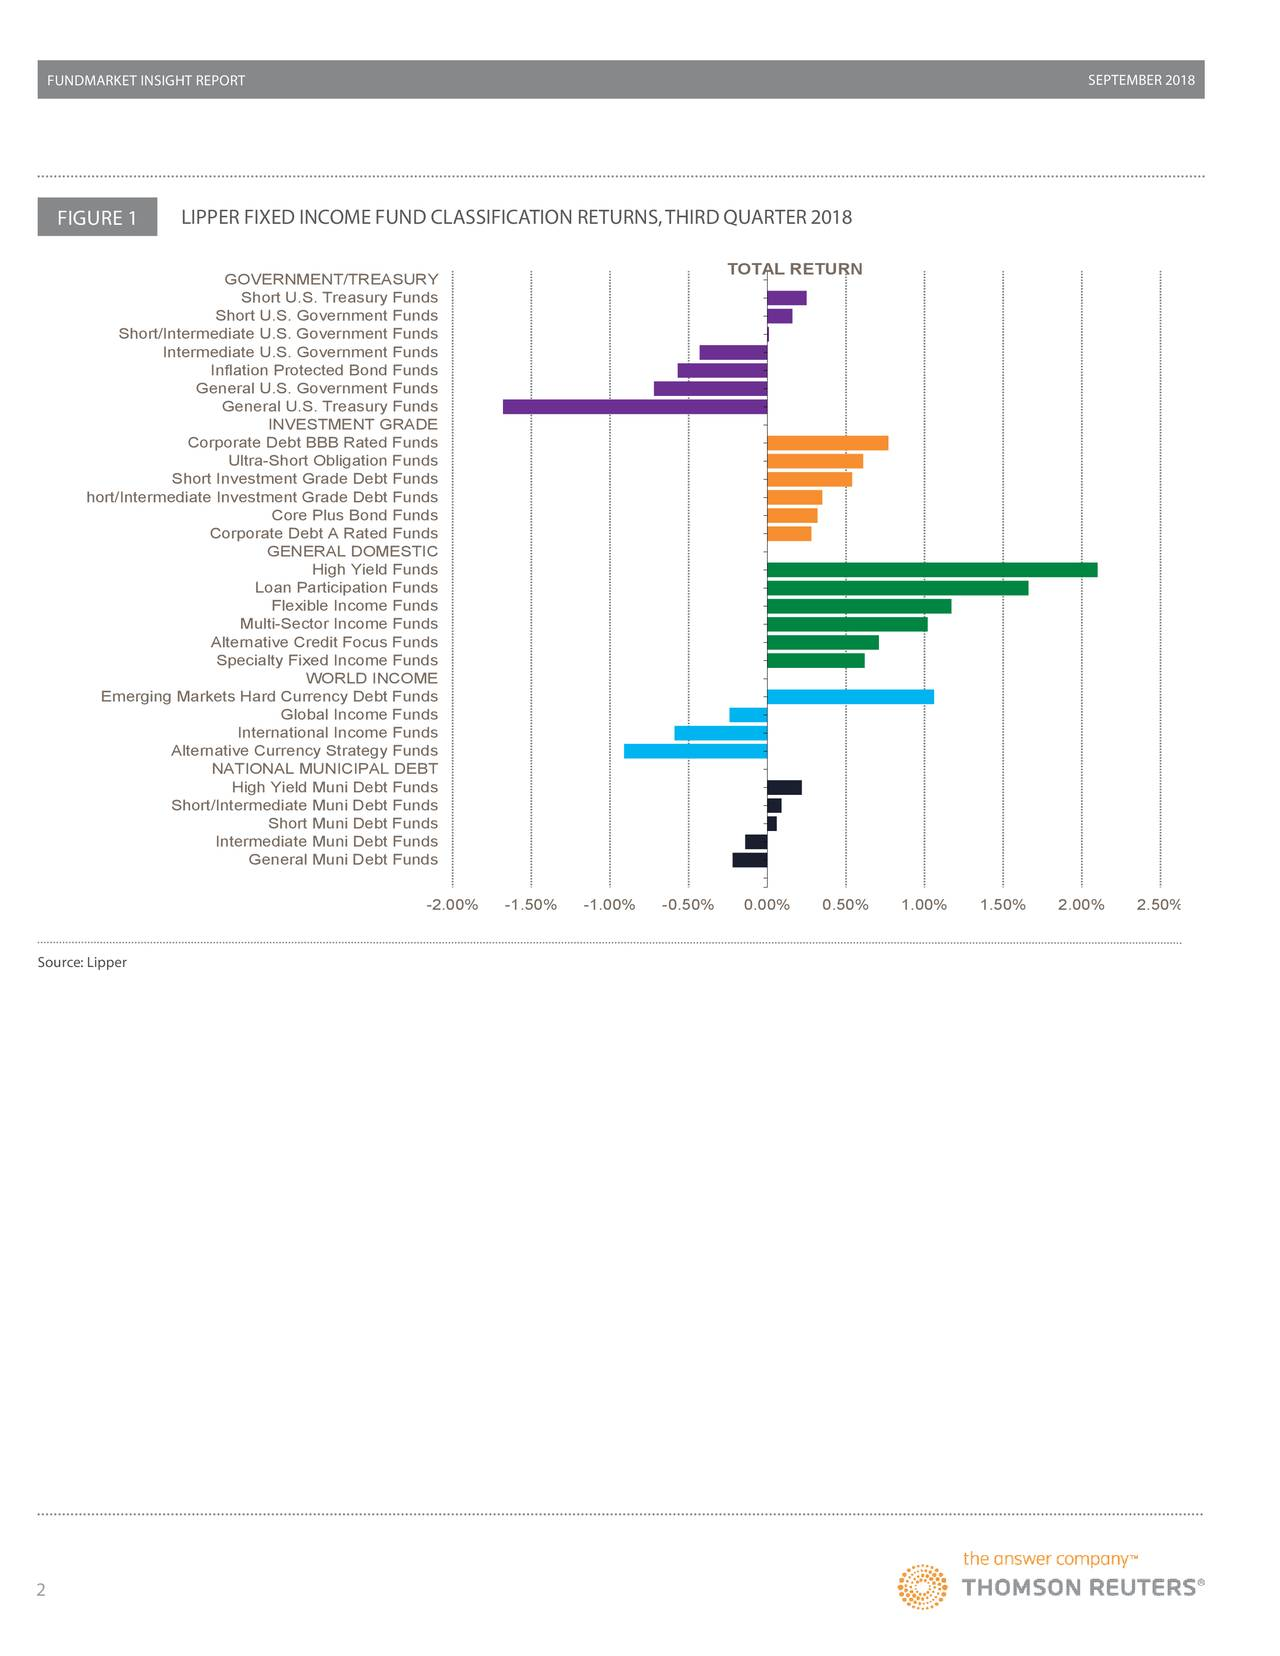 FIGURE 1 LIPPER FIXED INCOME FUND CLASSIFICATION RETURNS,THIRD QUARTER2018 TOTAL RETURN GOVERNMENT/TREASURY Short U.S. Treasury Funds Short U.S. Government Funds Short/Intermediate U.S. Government Funds Intermediate U.S. Government Funds Inflation Protected Bond Funds General U.S. Government Funds General U.S. Treasury Funds INVESTMENT GRADE Corporate Debt BBB Rated Funds Ultra-Short Obligation Funds Short Investment Grade Debt Funds hort/Intermediate Investment Grade Debt Funds Core Plus Bond Funds Corporate Debt A Rated Funds GENERAL DOMESTIC High Yield Funds Loan Participation Funds Flexible Income Funds Multi-Sector Income Funds Alternative Credit Focus Funds Specialty Fixed Income Funds WORLD INCOME Emerging Markets Hard Currency Debt Funds Global Income Funds International Income Funds Alternative Currency Strategy Funds NATIONAL MUNICIPAL DEBT High Yield Muni Debt Funds Short/Intermediate Muni Debt Funds Short Muni Debt Funds Intermediate Muni Debt Funds General Muni Debt Funds -2.00% -1.50% -1.00% -0.50% 0.00% 0.50% 1.00% 1.50% 2.00% 2.50% Source: Lipper 2